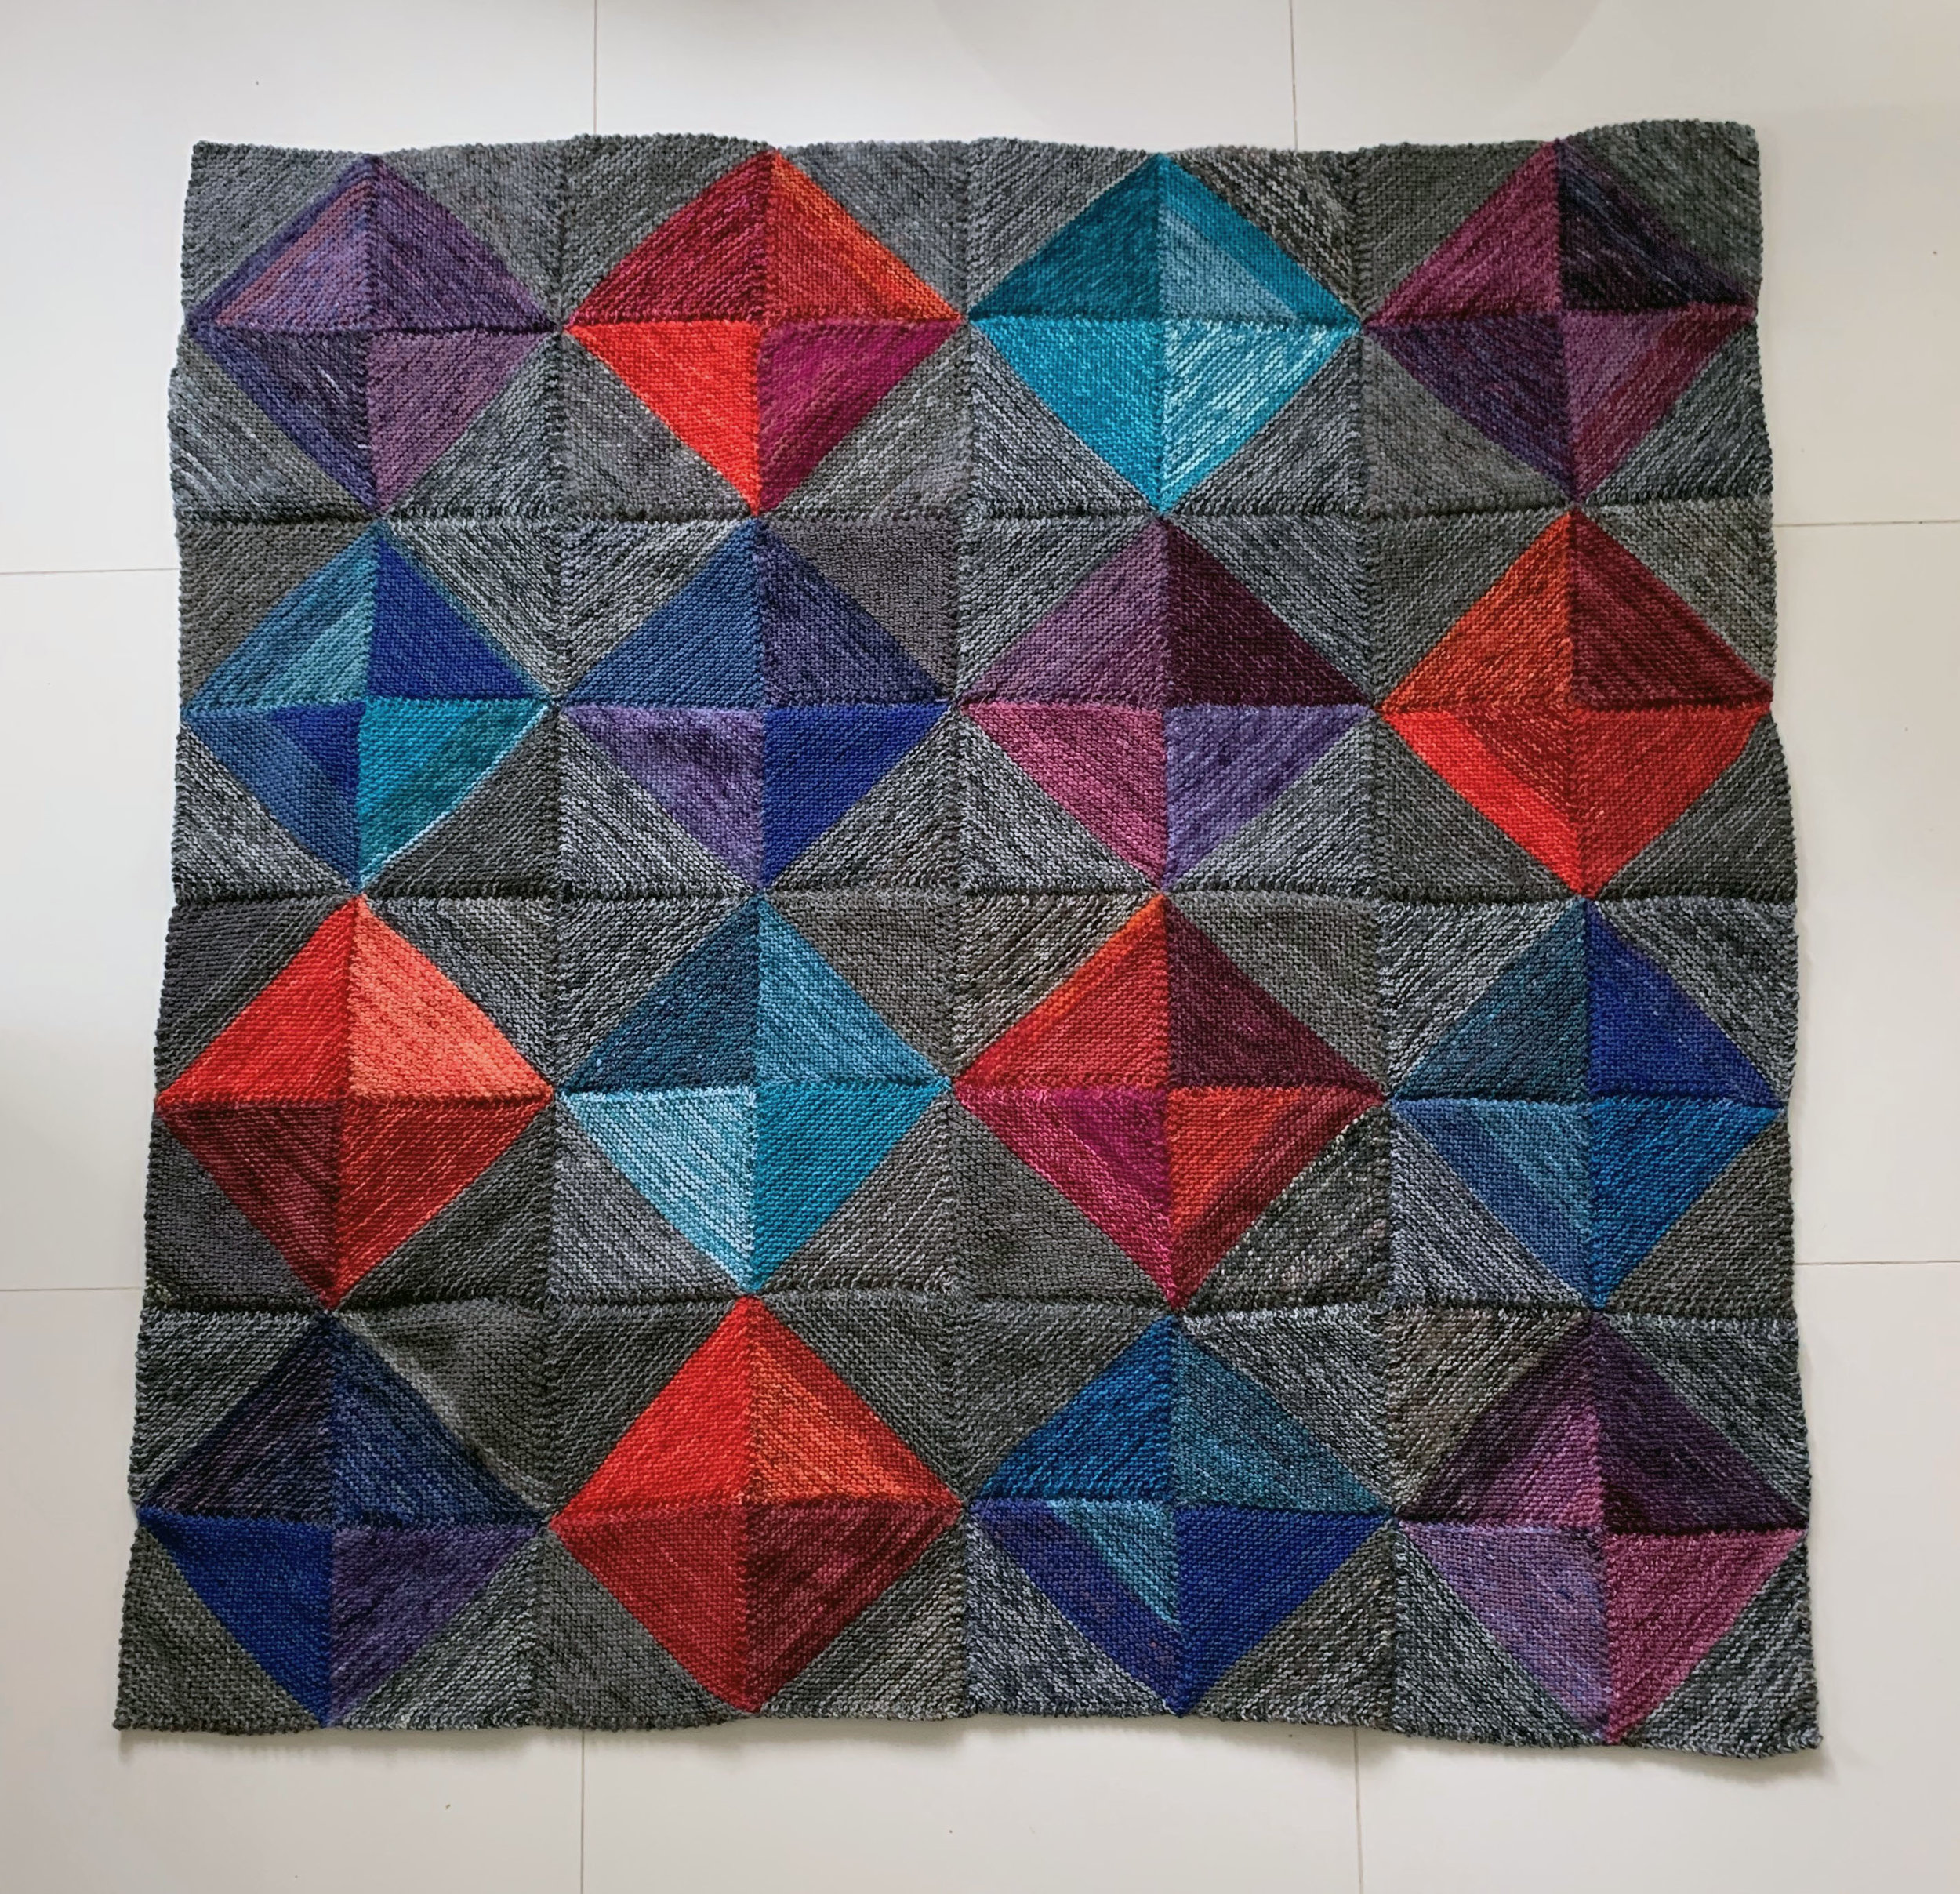 - knitter's quilt: dancing diamondsInspired by patchwork quilting, this cozy diamond-motif blanket makes your scrap yarn shine.The knitting directions are easy to memorize, almost any yarn weight can be included, and the yarn requirements for each square are so scant that this project will fit in even a sandwich-size bag. There is simply no better on-the-go knitting. If you knit a square every time you find yourself with a few spare minutes, you'll have a blanket in no time.Pattern available on Ravelry.